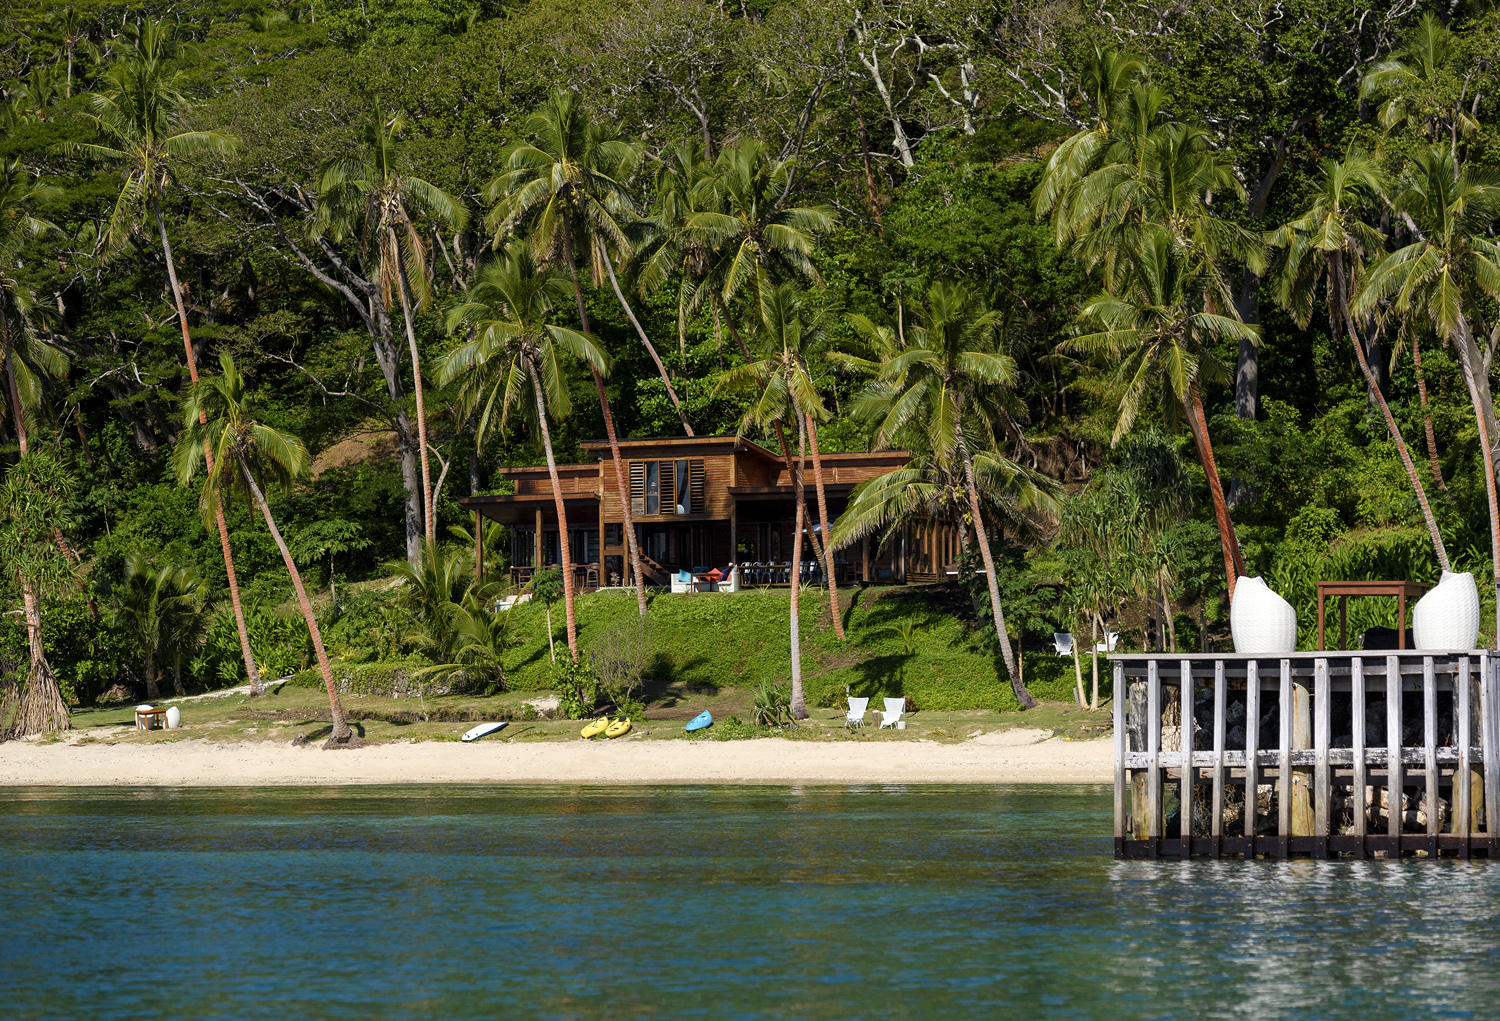 Main Pavilion restaurant and bar, beach and the jetty at The Remote Resort, Fiji Islands